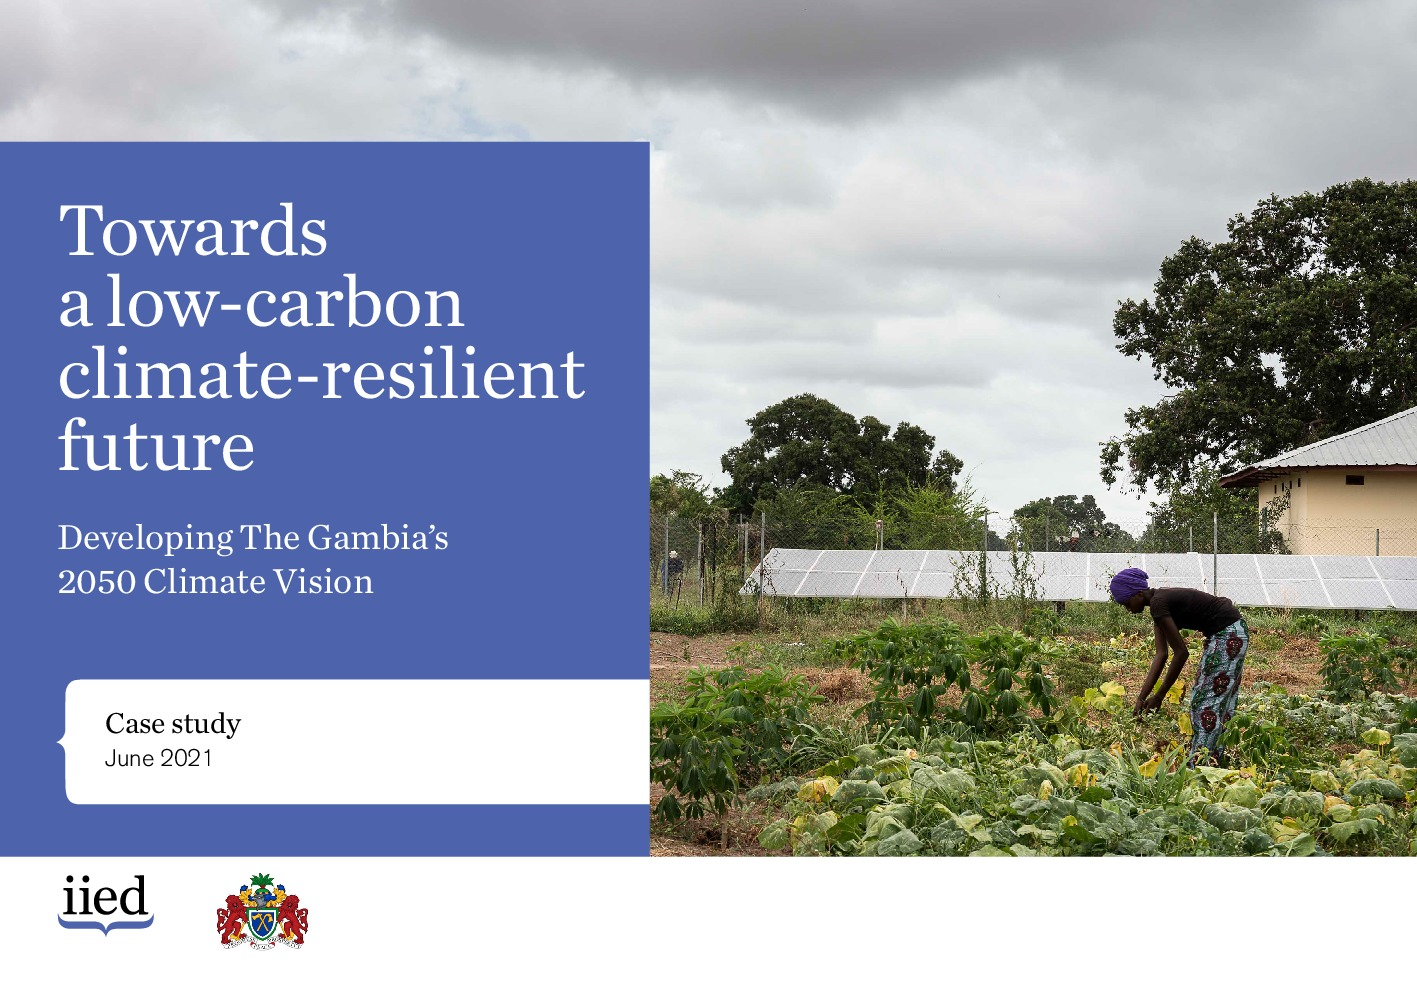 Towards  a low-carbon climate-resilient future. Developing The Gambia's 2050 Climate Vision